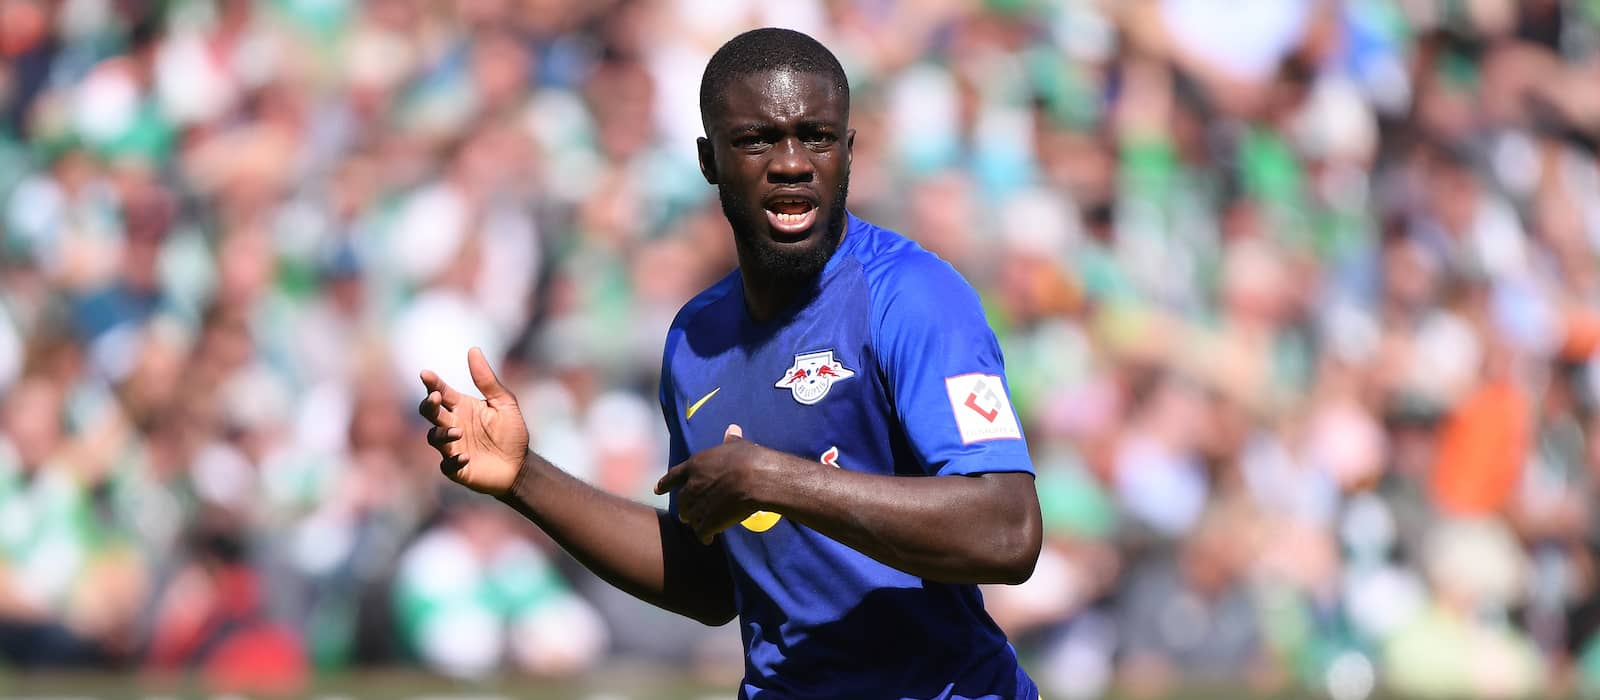 Manchester United target Dayot Upamecano signs new contract in Germany